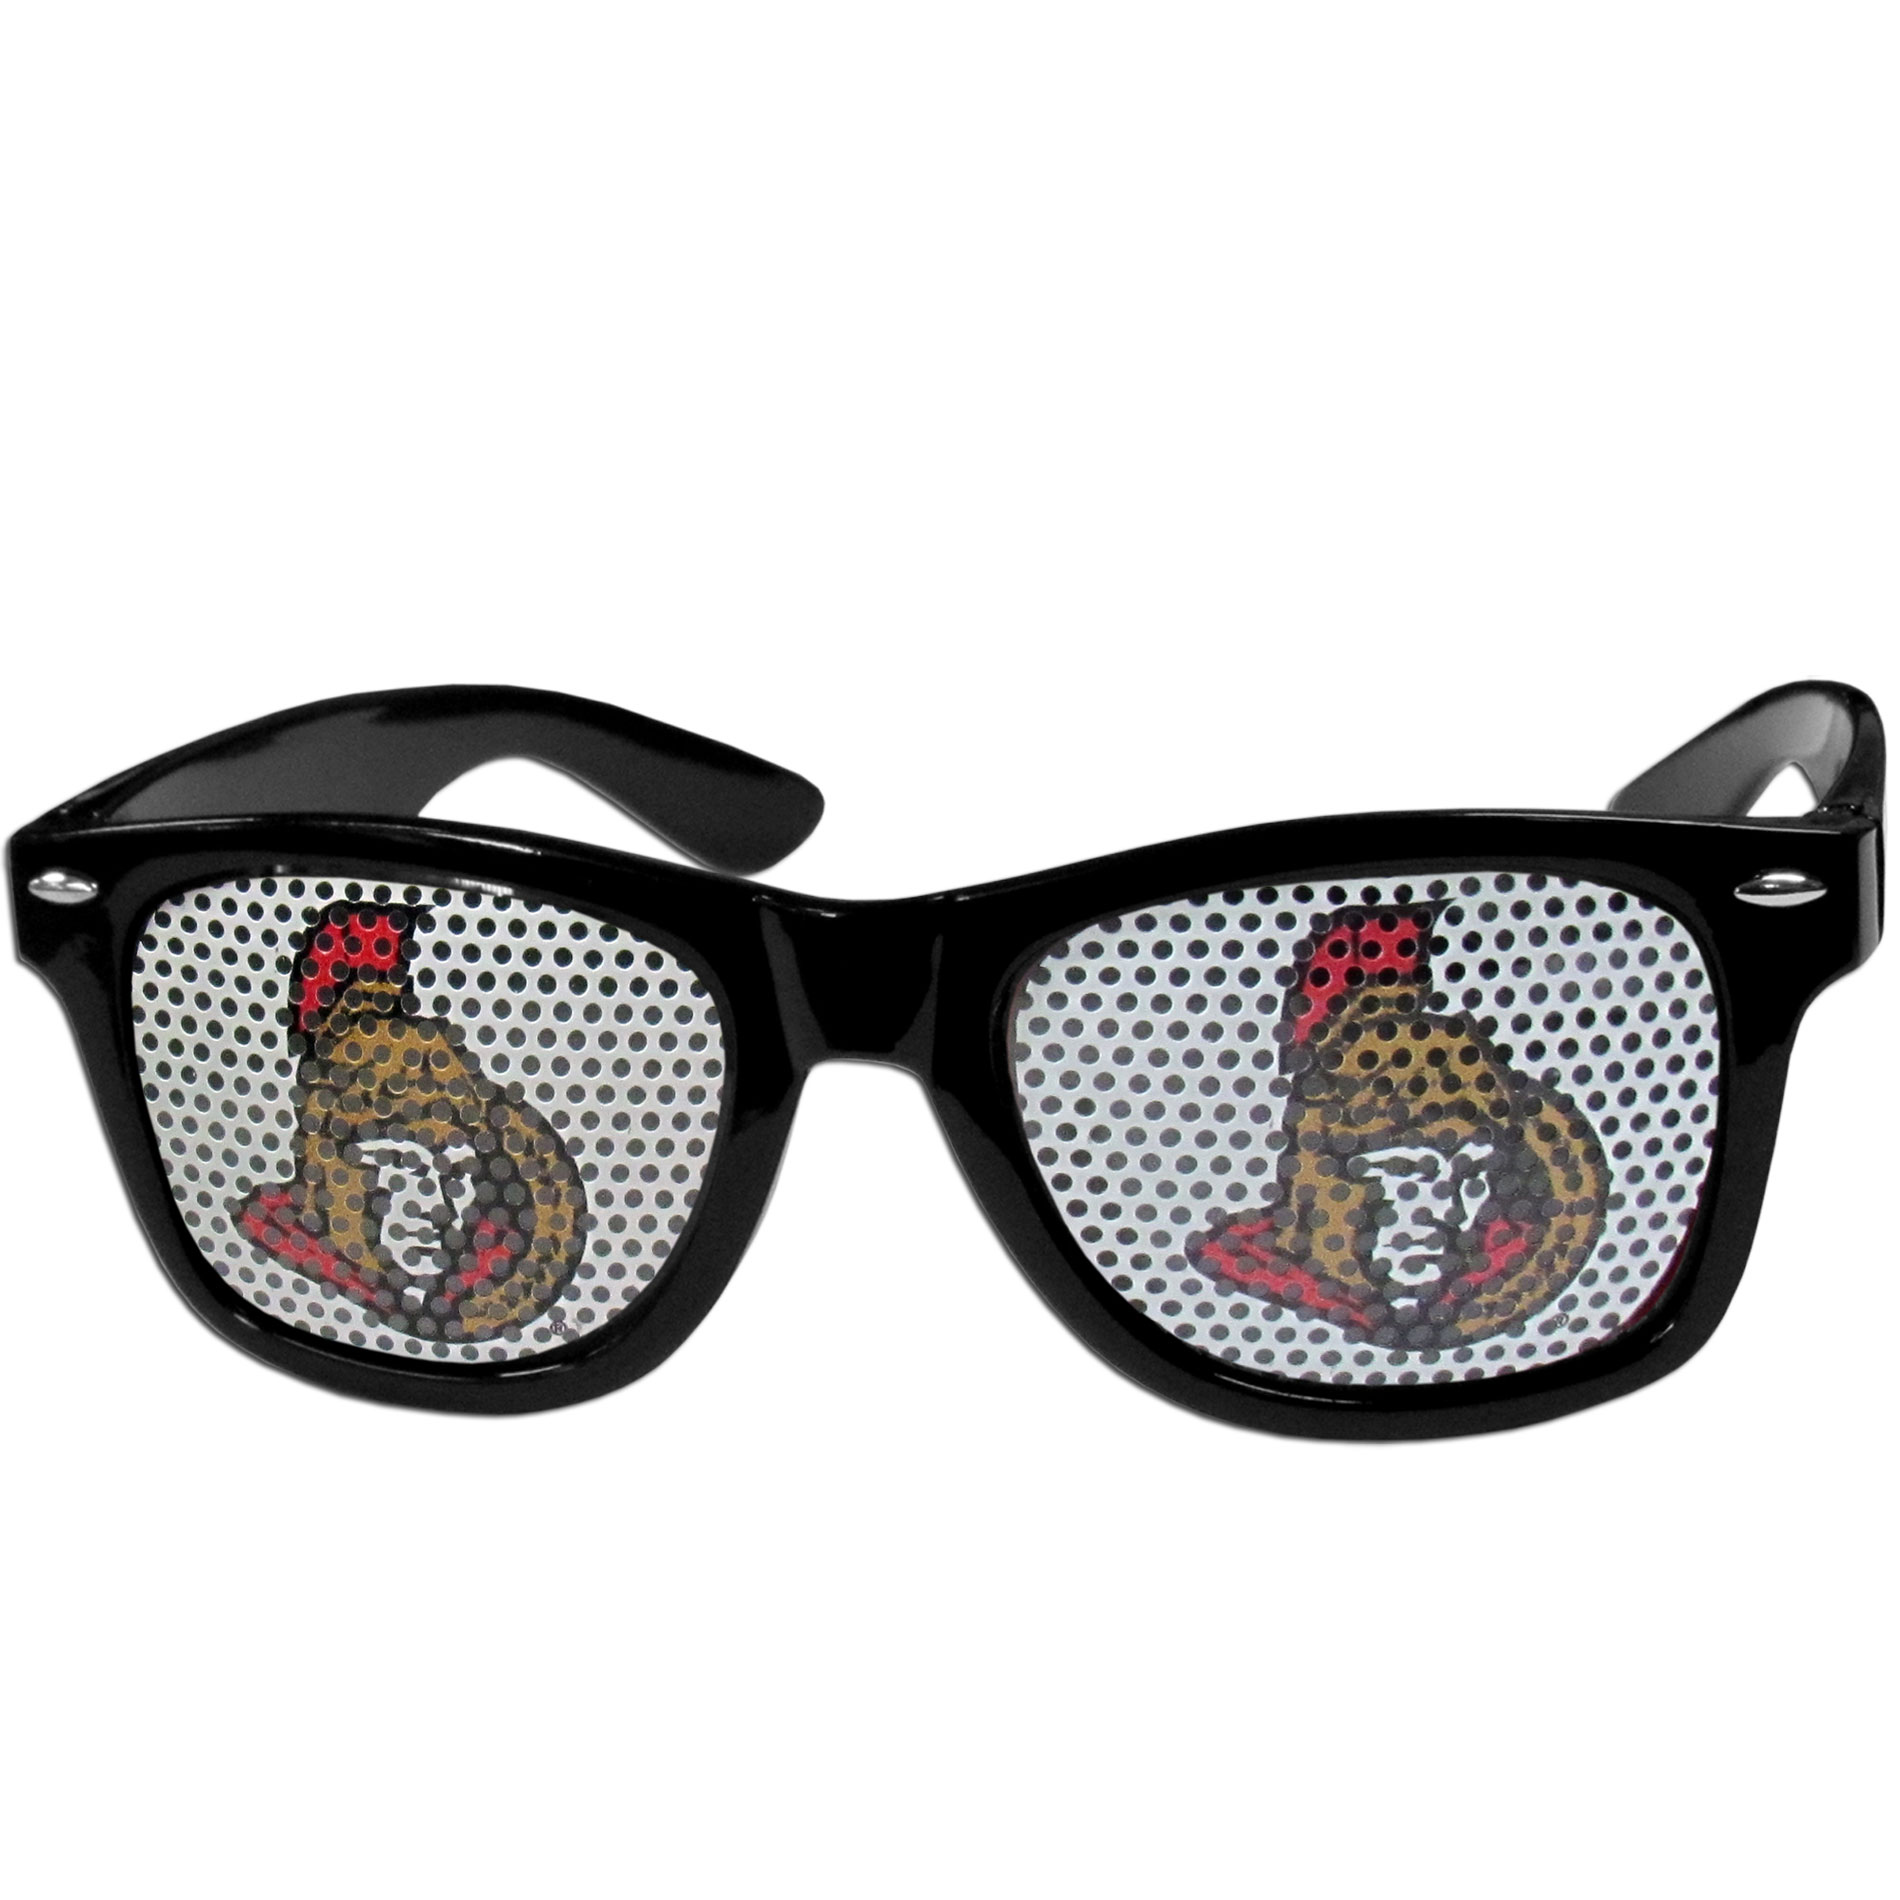 Ottawa Senators Game Day Shades - Officially licensed Ottawa Senators game day shades are the perfect accessory for the devoted Ottawa Senators fan! The Ottawa Senators game day sunglasses have durable polycarbonate frames with flex hinges for comfort and damage resistance. The lenses feature brightly colored Ottawa Senators clings that are perforated for visibility. Thank you for visiting CrazedOutSports